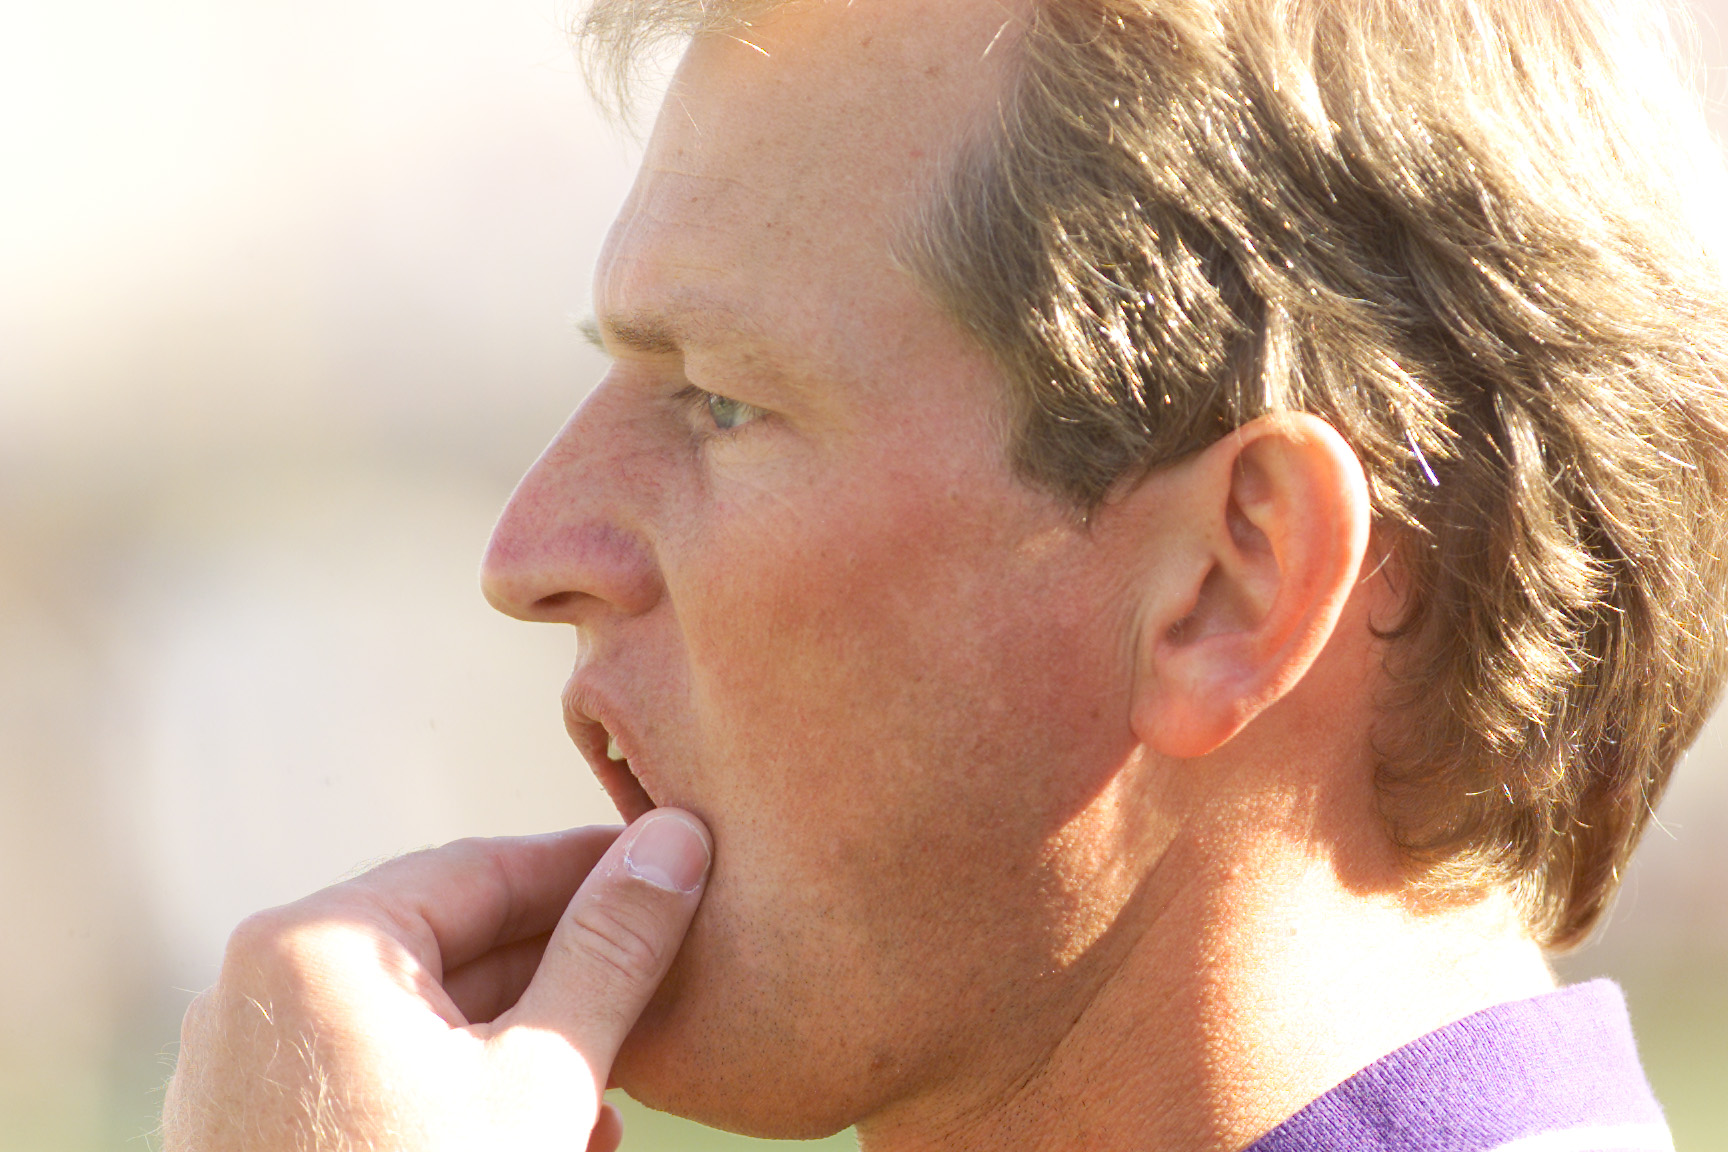 The University of Washington fired head coach Rick Neuheisel for his involvement in a March Madness pool.